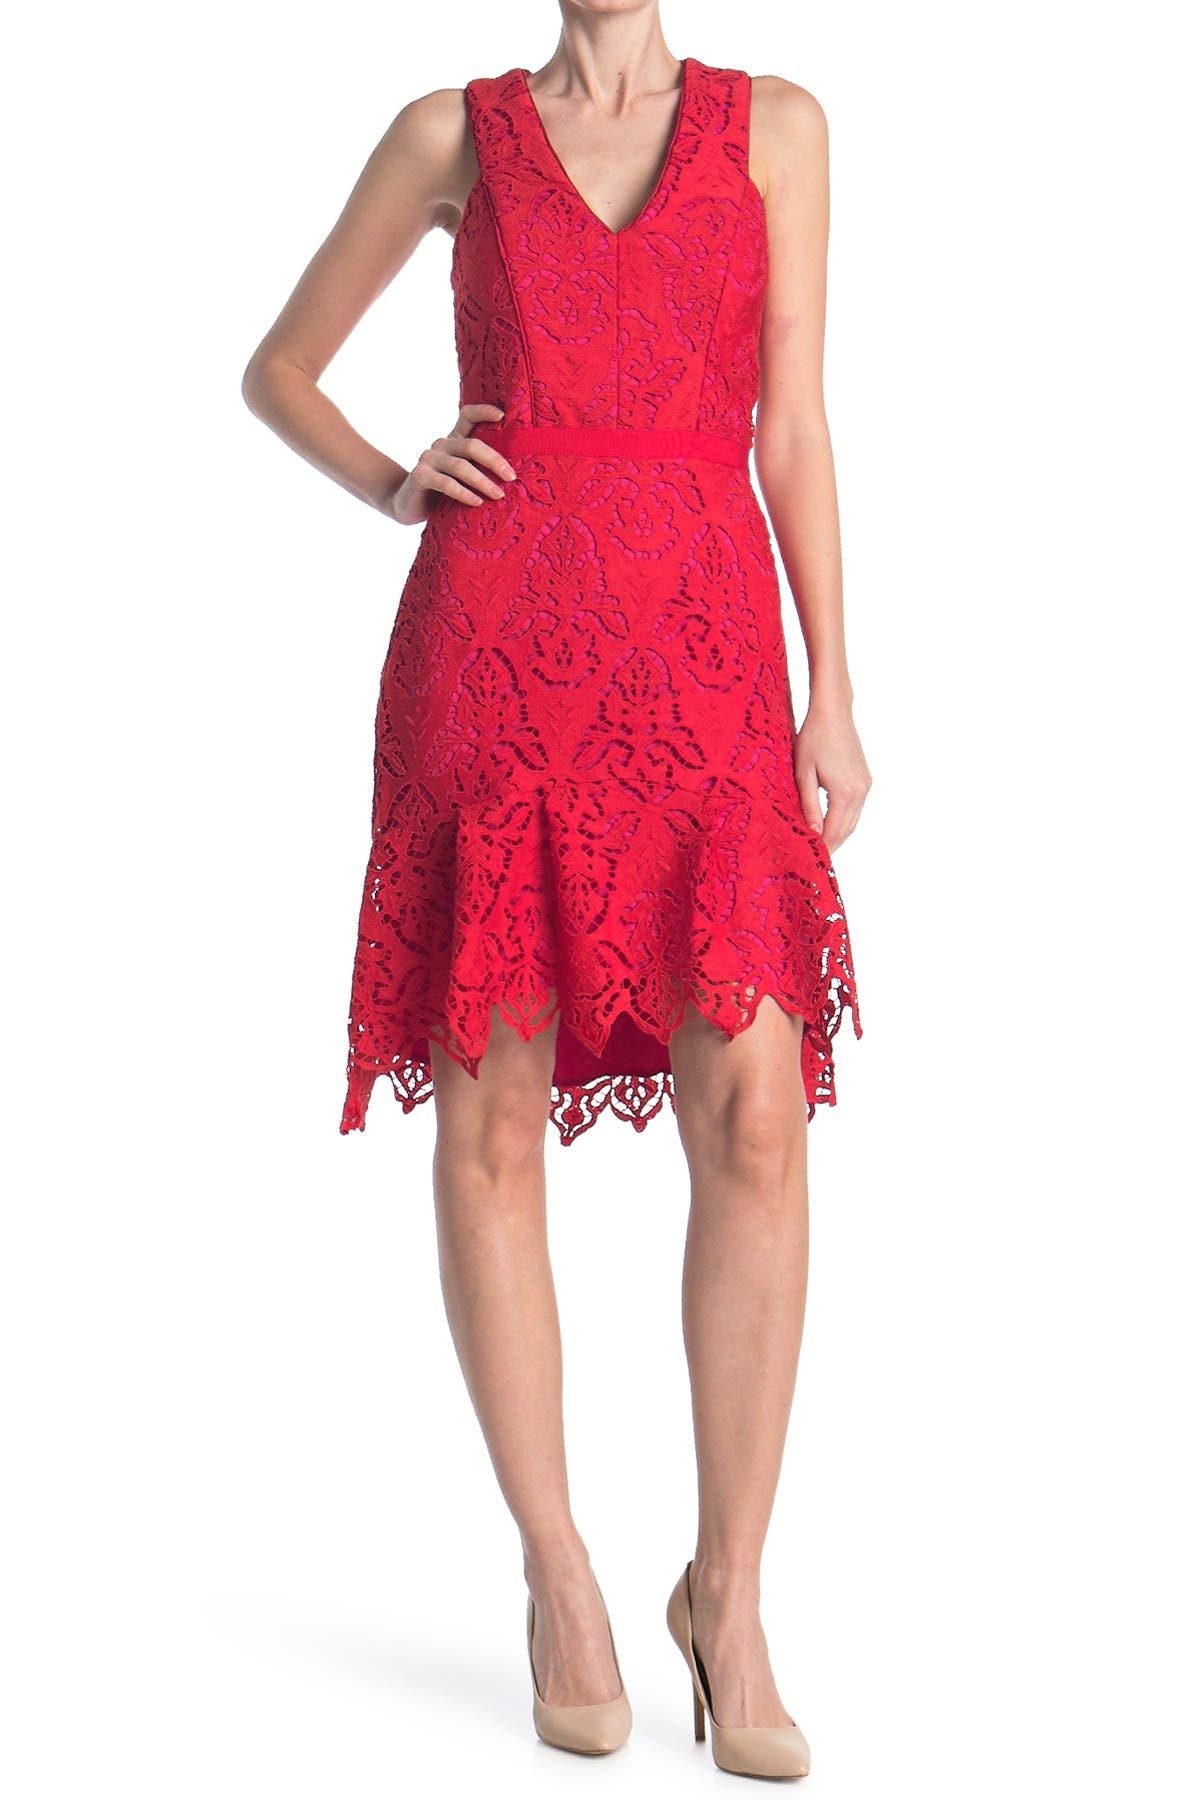 Image of Adelyn Rae Damion High/Low Lace Dress